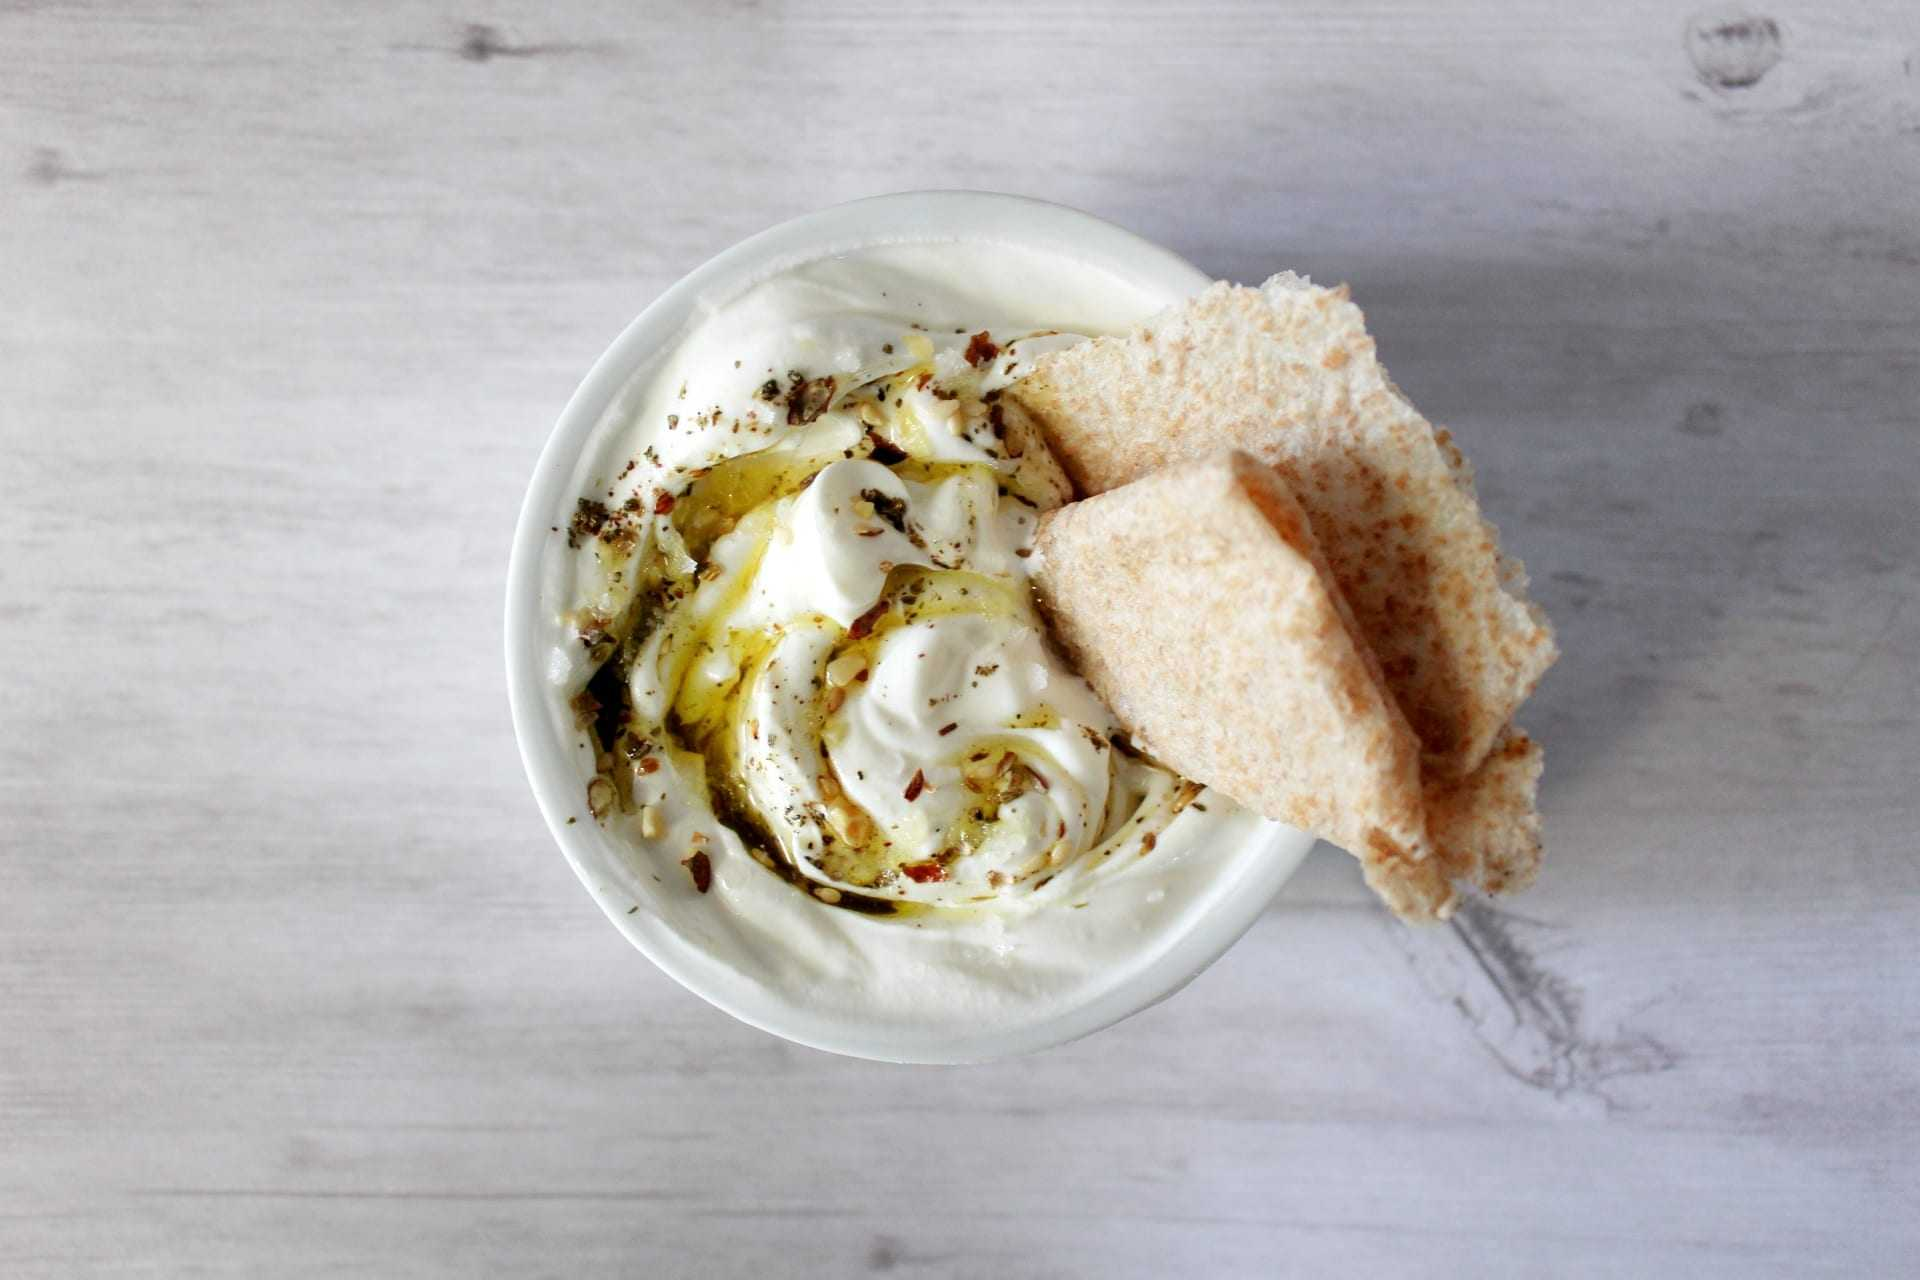 labneh-with-zaatarspiced-olive-oil-olive-oil-times-labneh-with-zaatarspiced-evoo